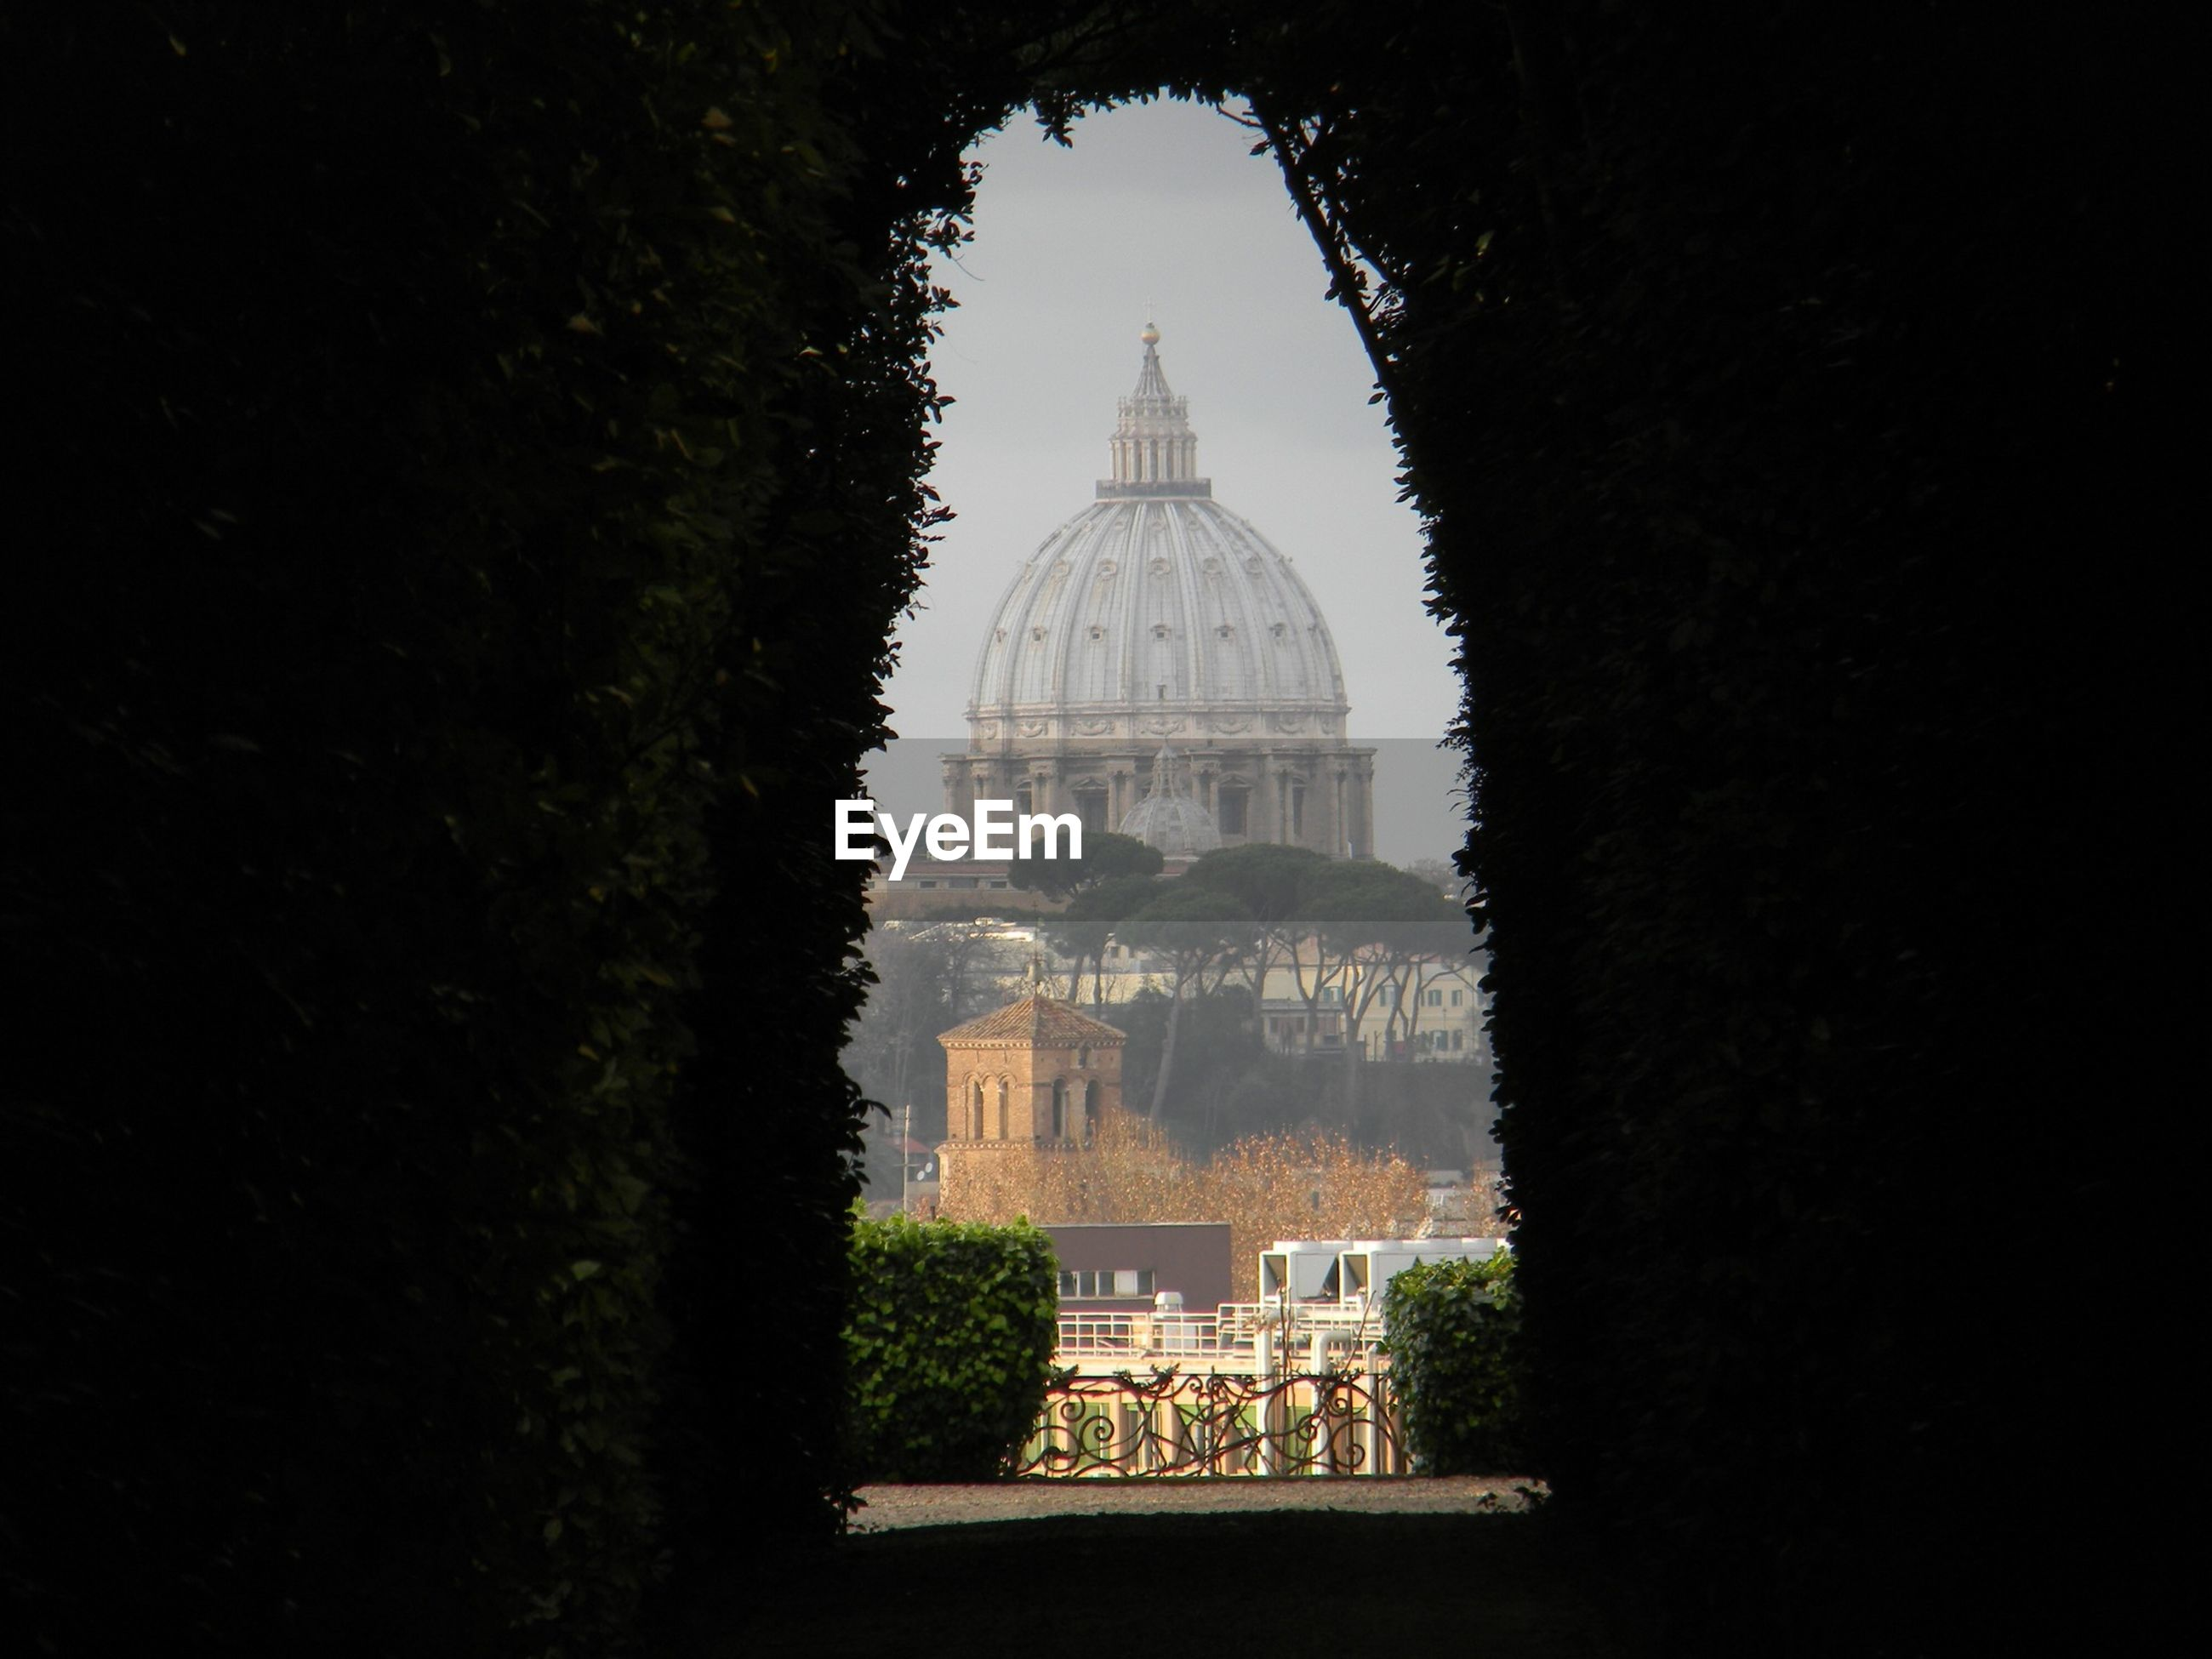 St peters basilica seen through archway made by trees